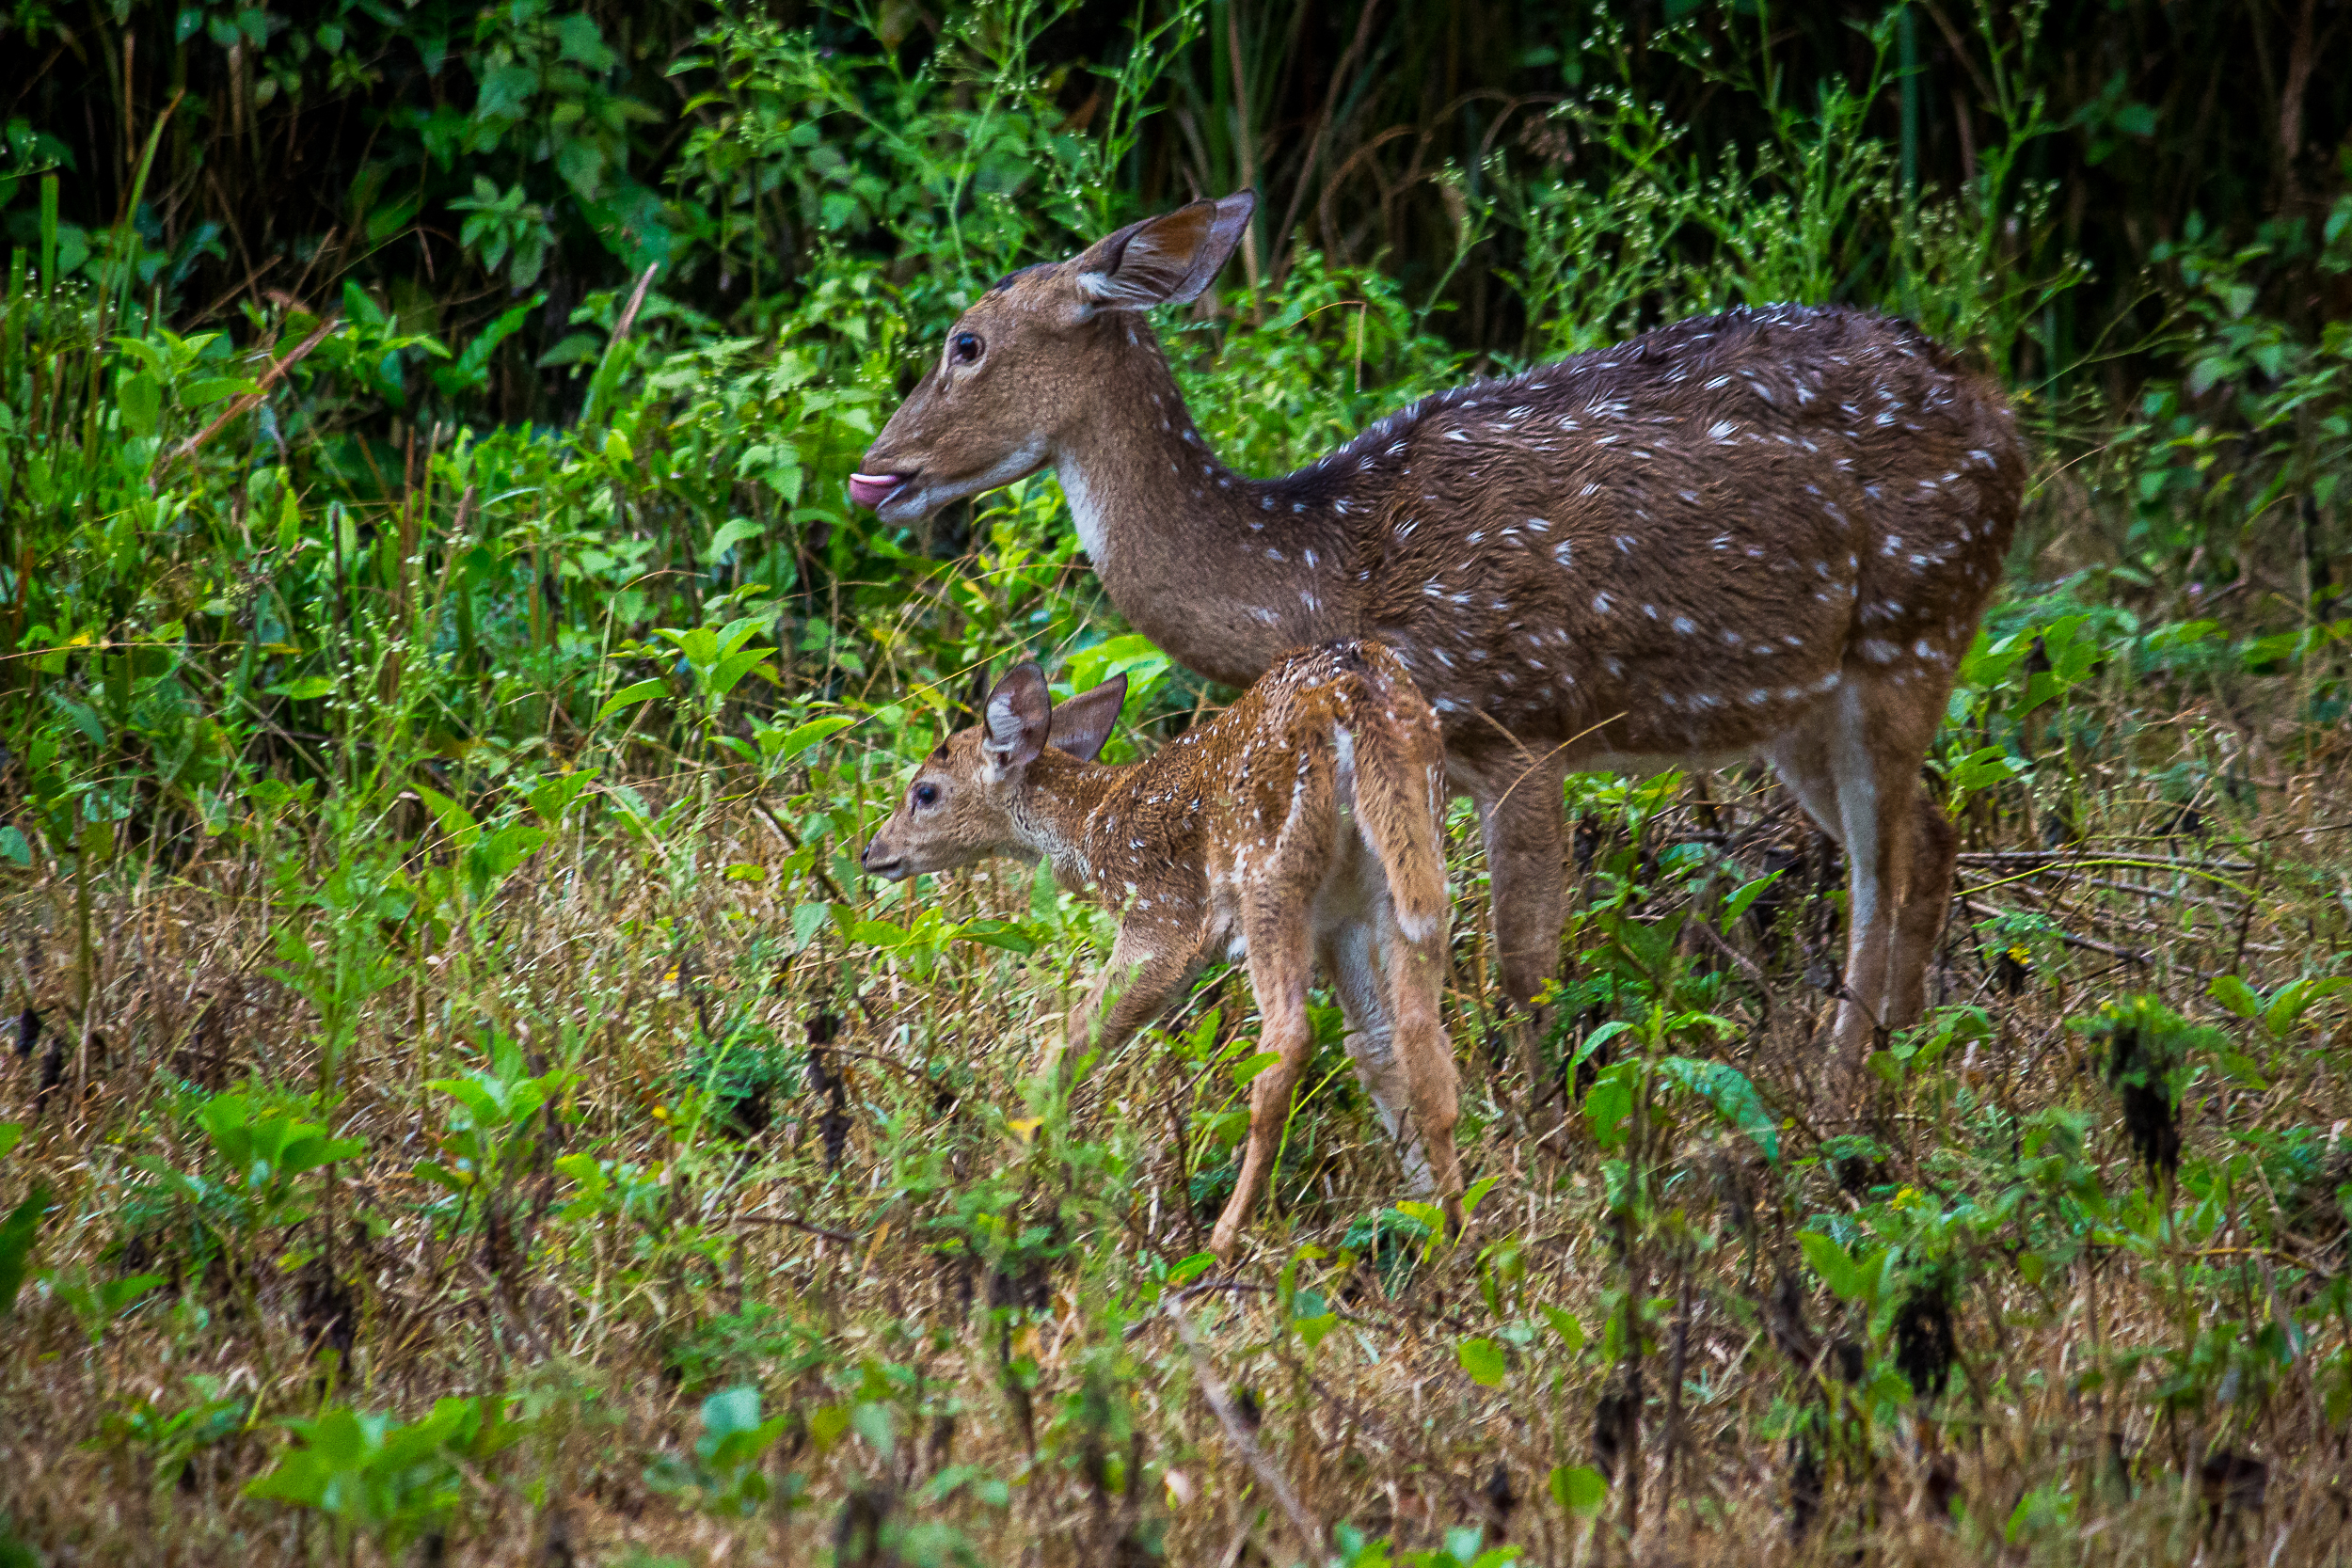 Chital Deer in the forest